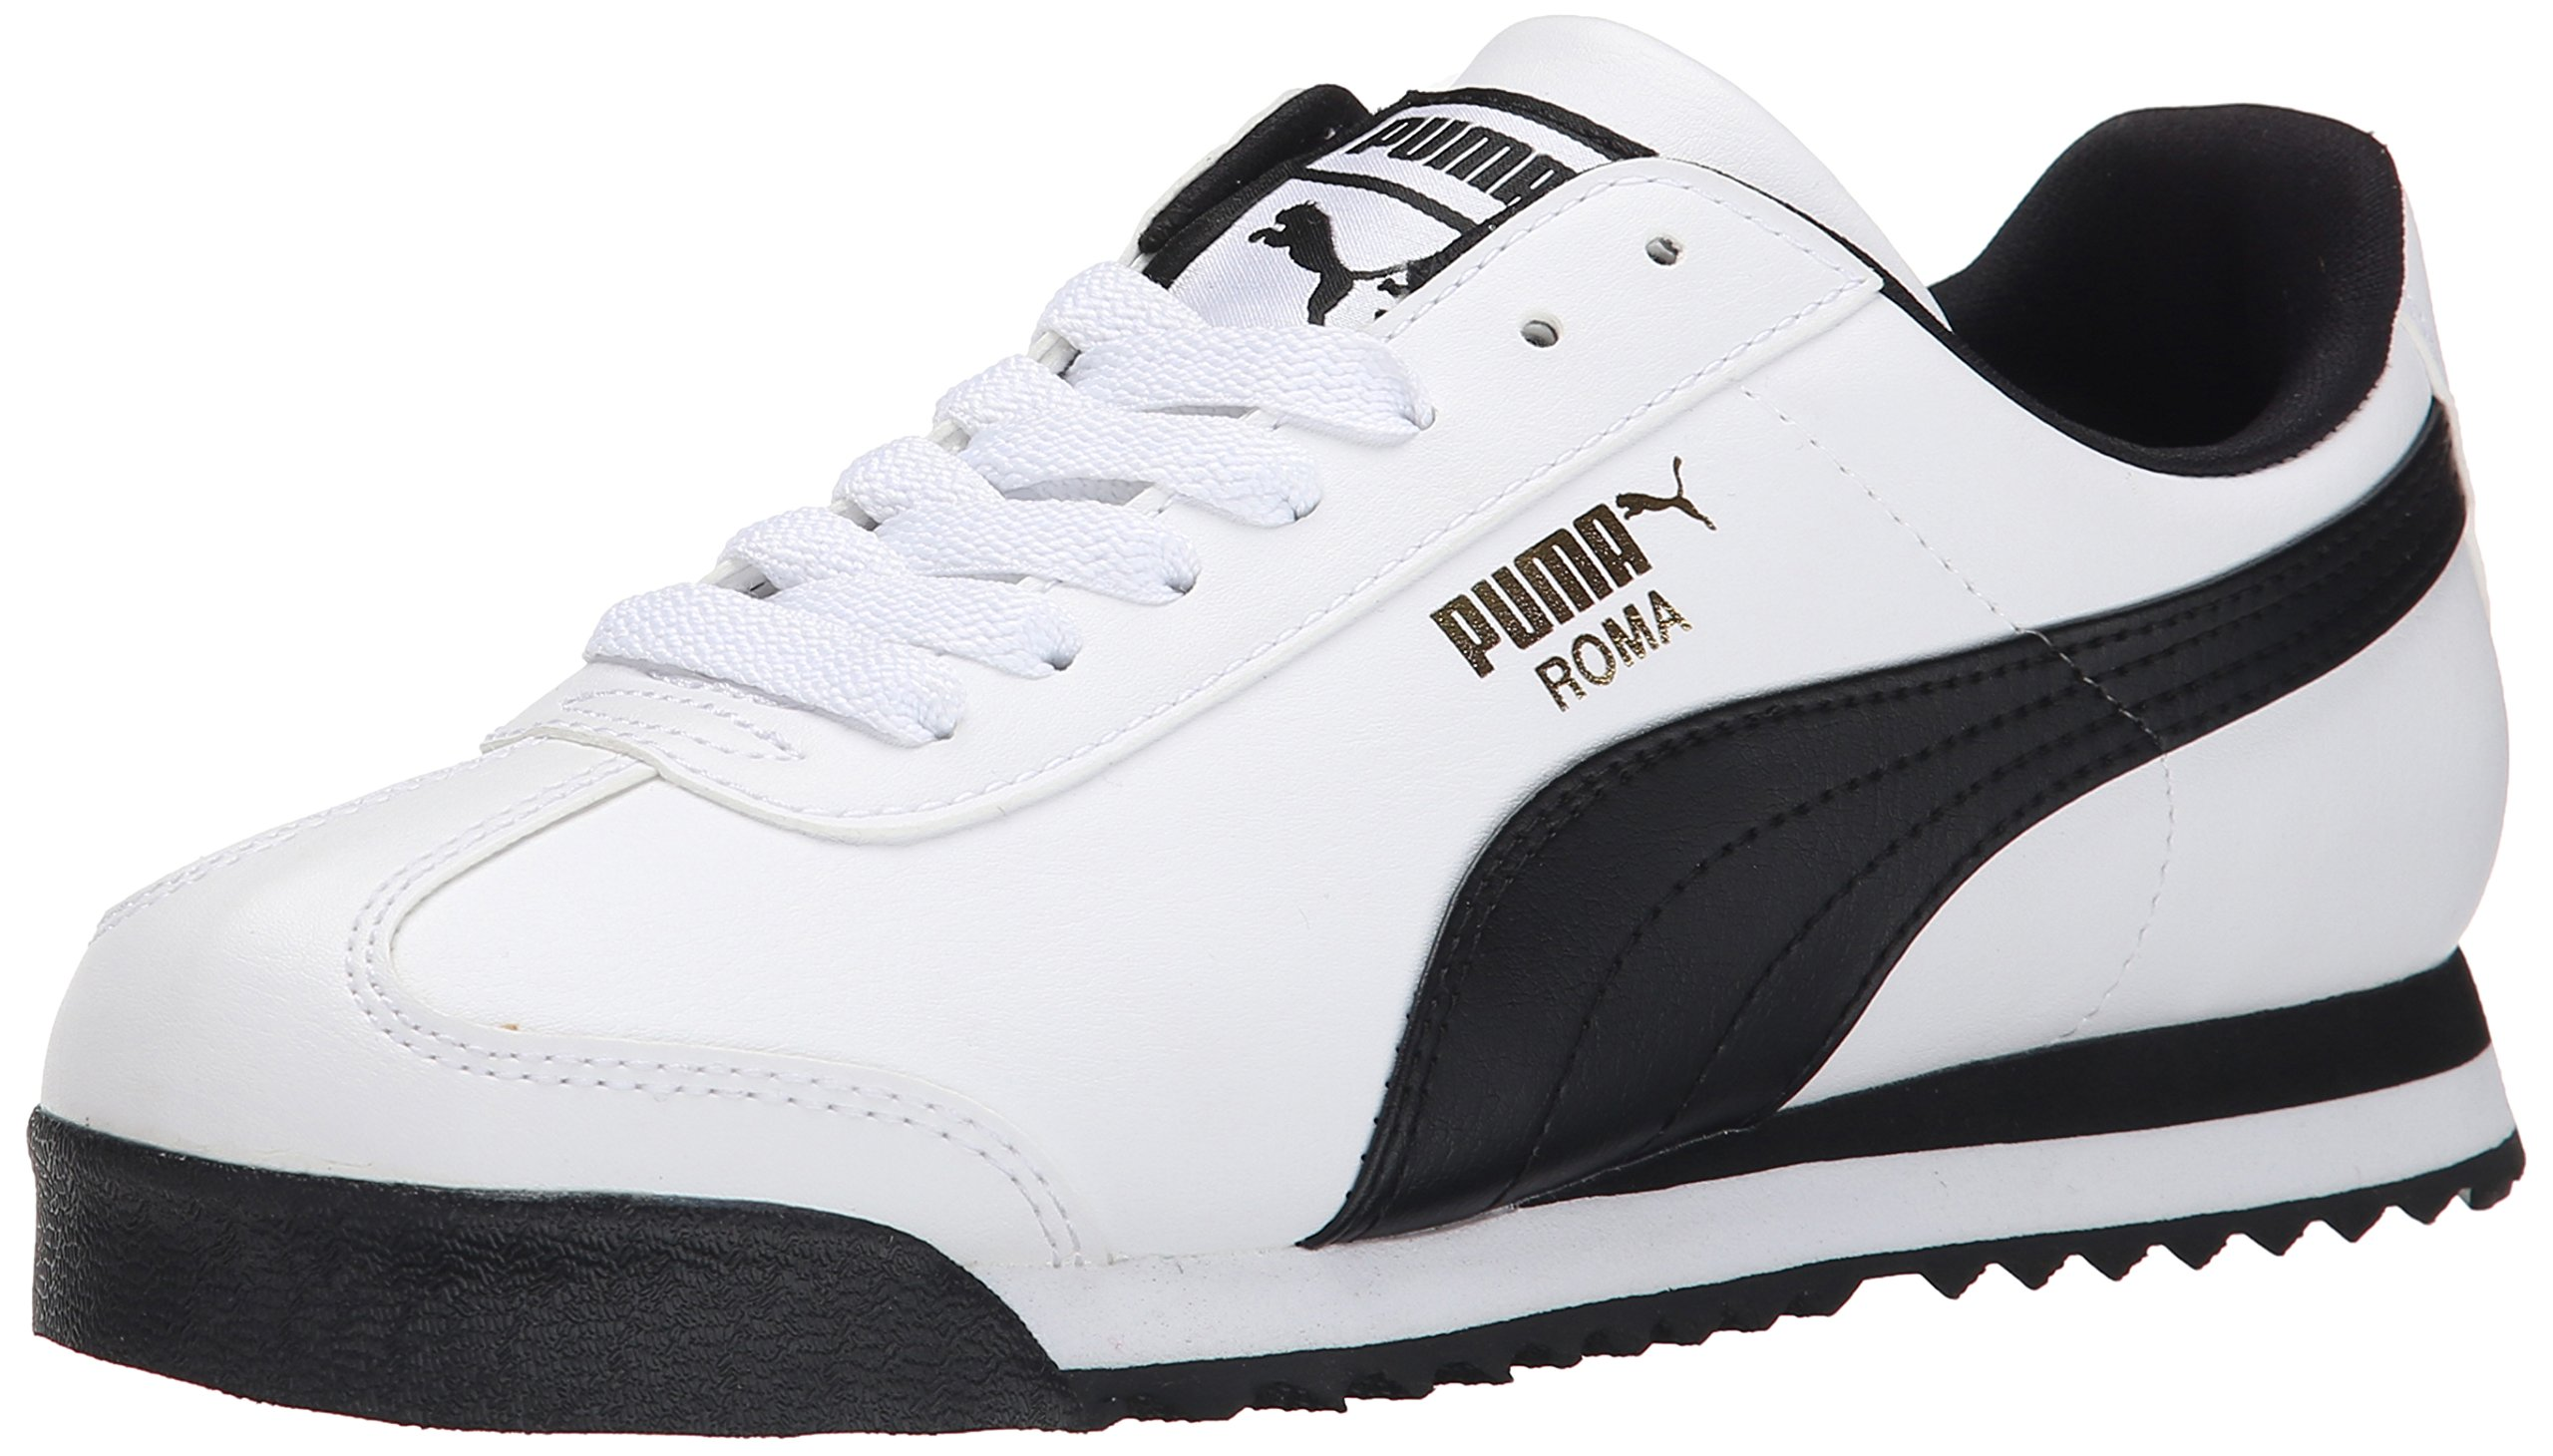 PUMA Men's Roma Basic Fashion Sneaker, White/Black Leather - 15 D(M) US by PUMA